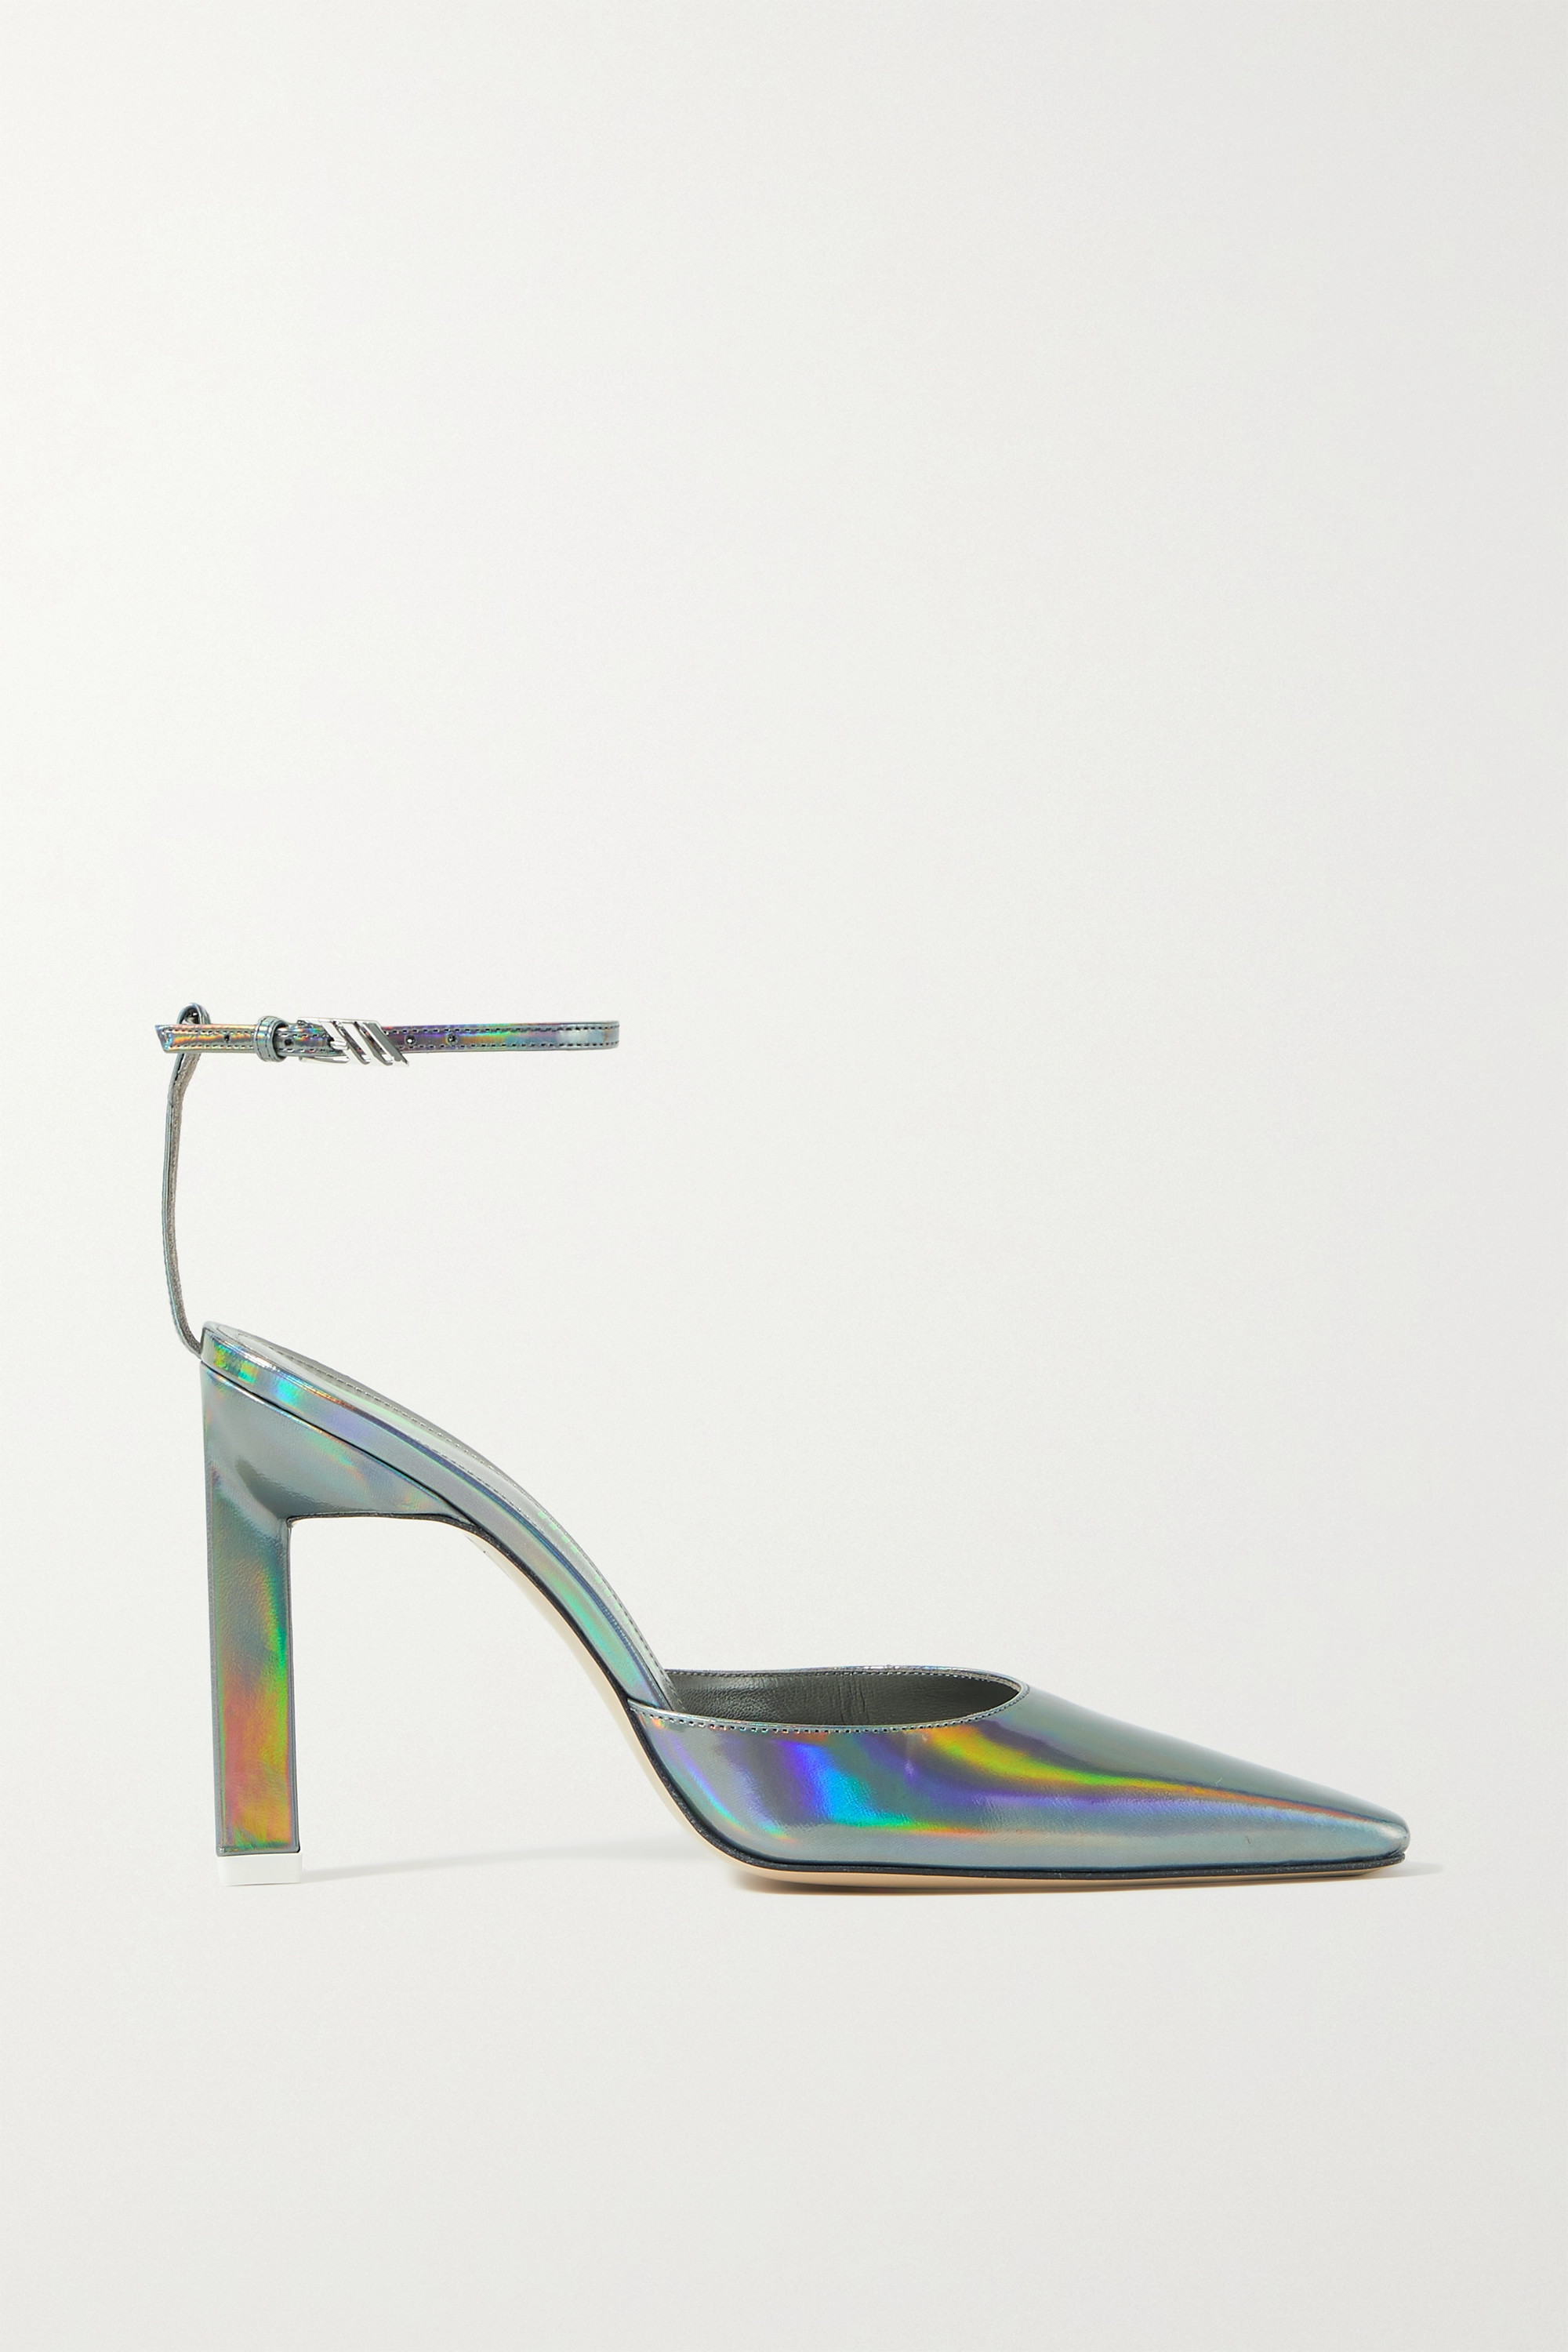 THE ATTICO Amber iridescent leather pumps